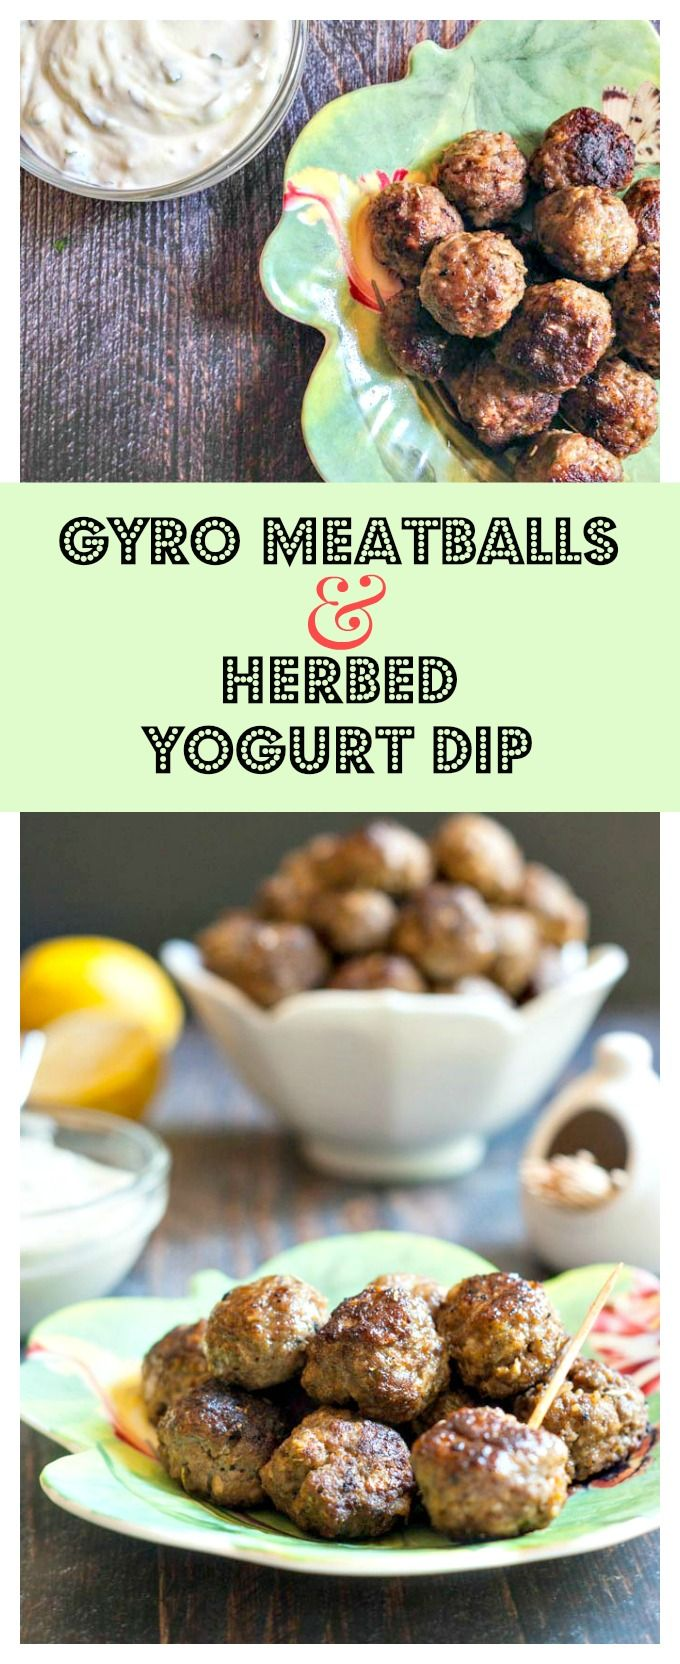 These gyro meatballs & herbed yogurt dip are a fun dish to make for any party. #SundaySupper